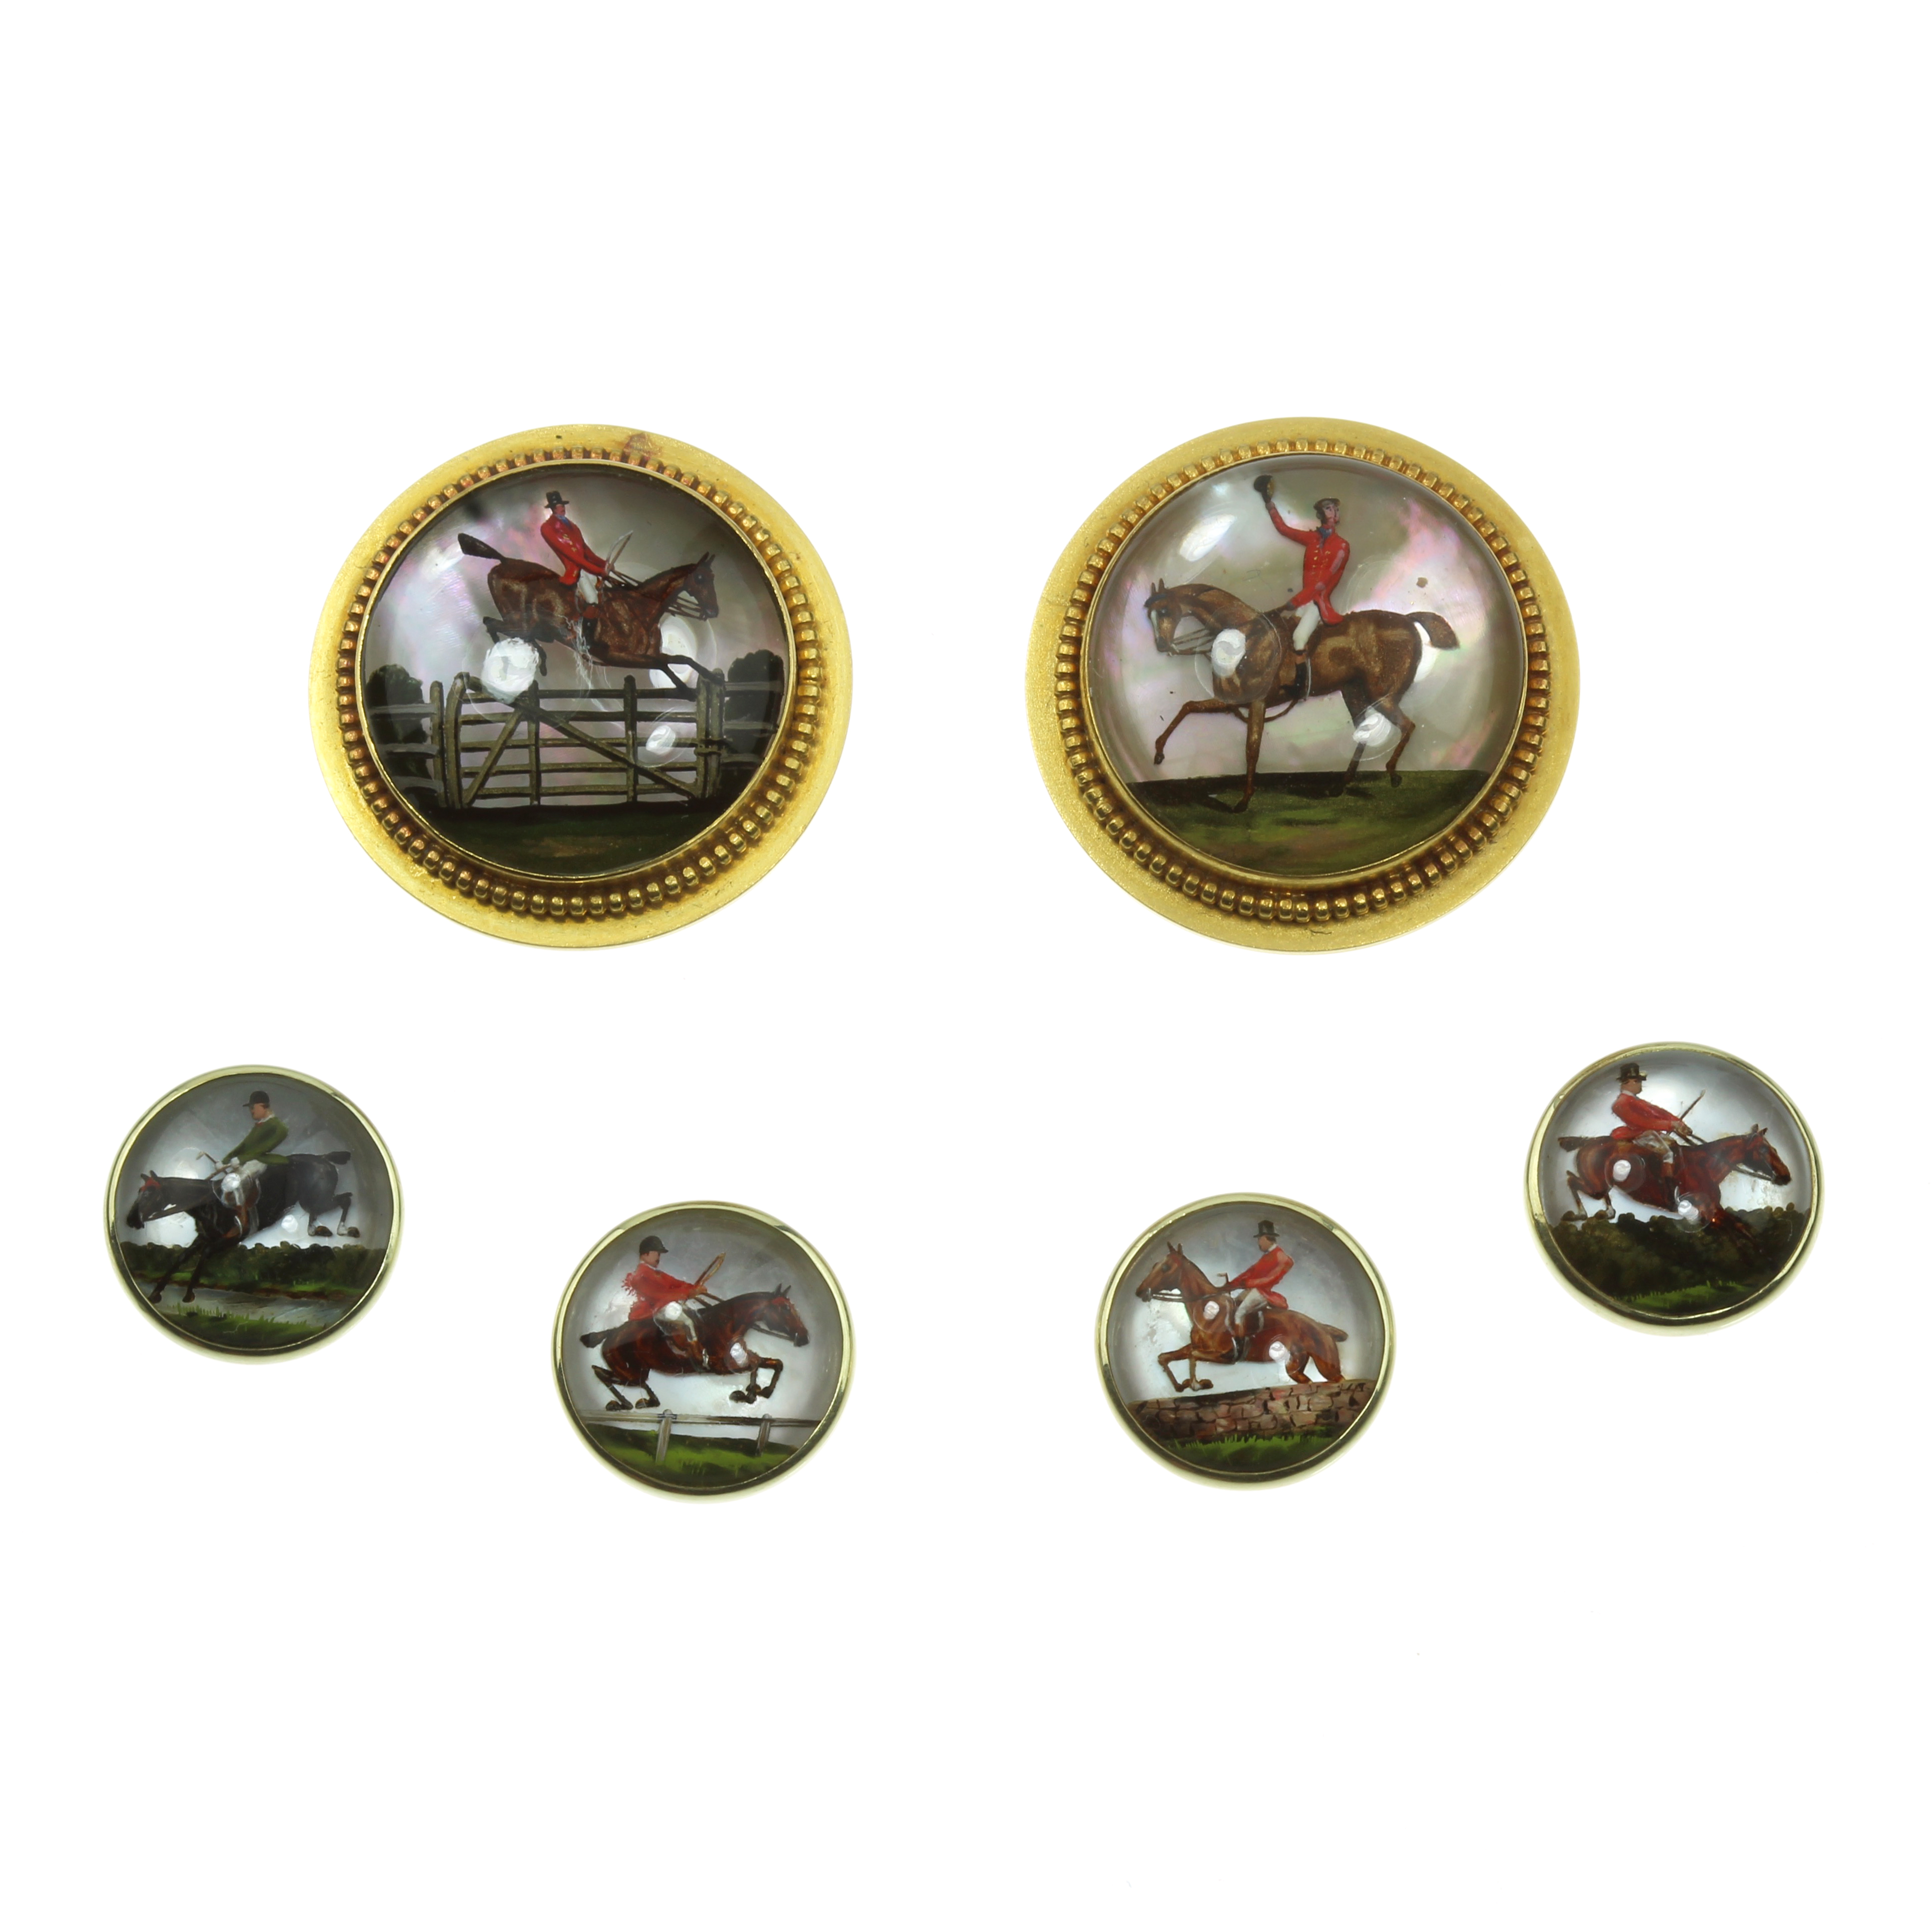 Los 49 - AN ANTIQUE EQUESTRIAN ESSEX CRYSTAL CUFFLINKS AND SHIRT BUTTON DRESS SET in high carat yellow gold